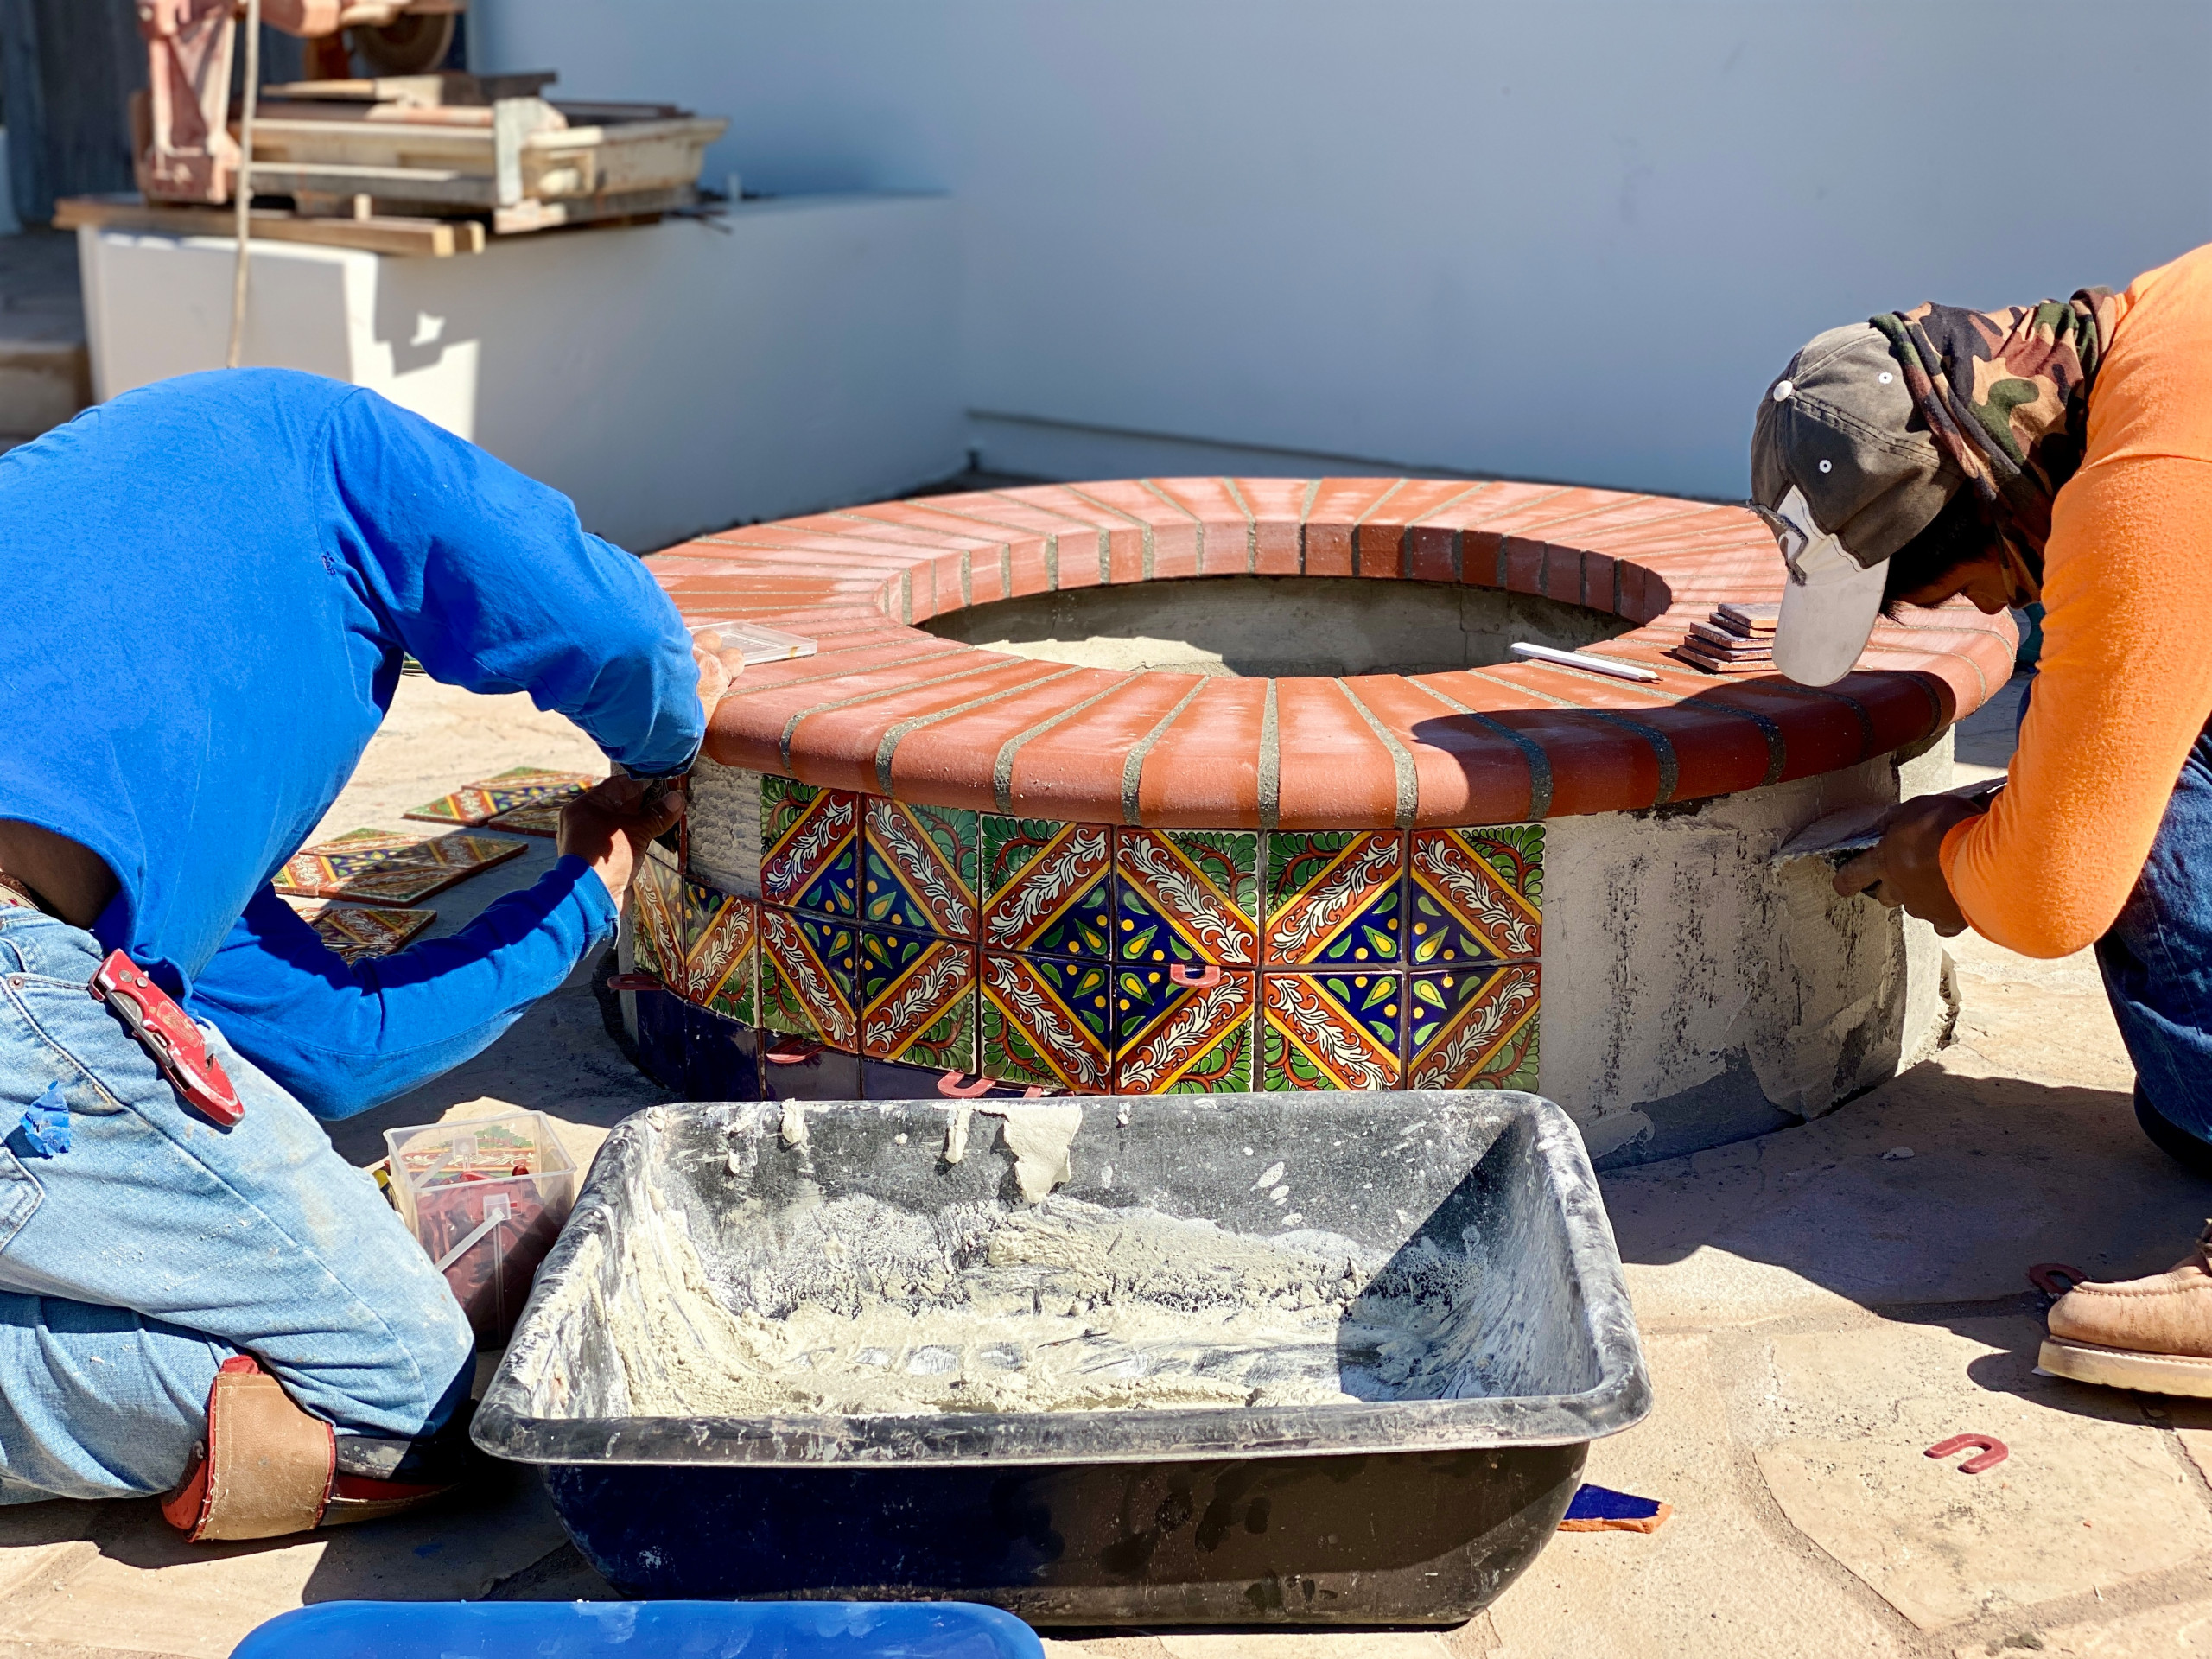 Installing Mexican Tile on a New Fire Pit in Crown Point